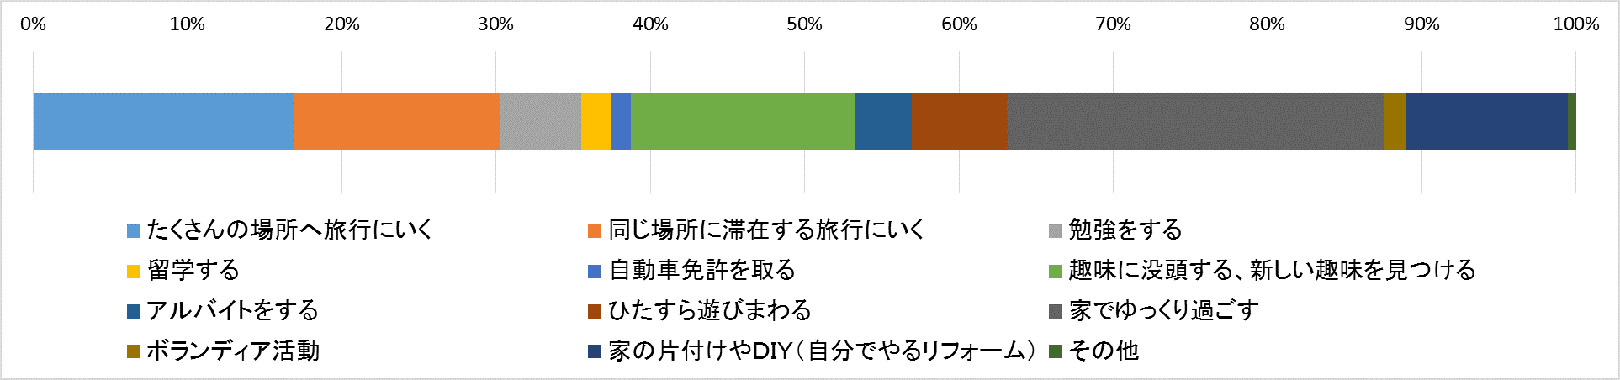 201808-15-fig-03.png